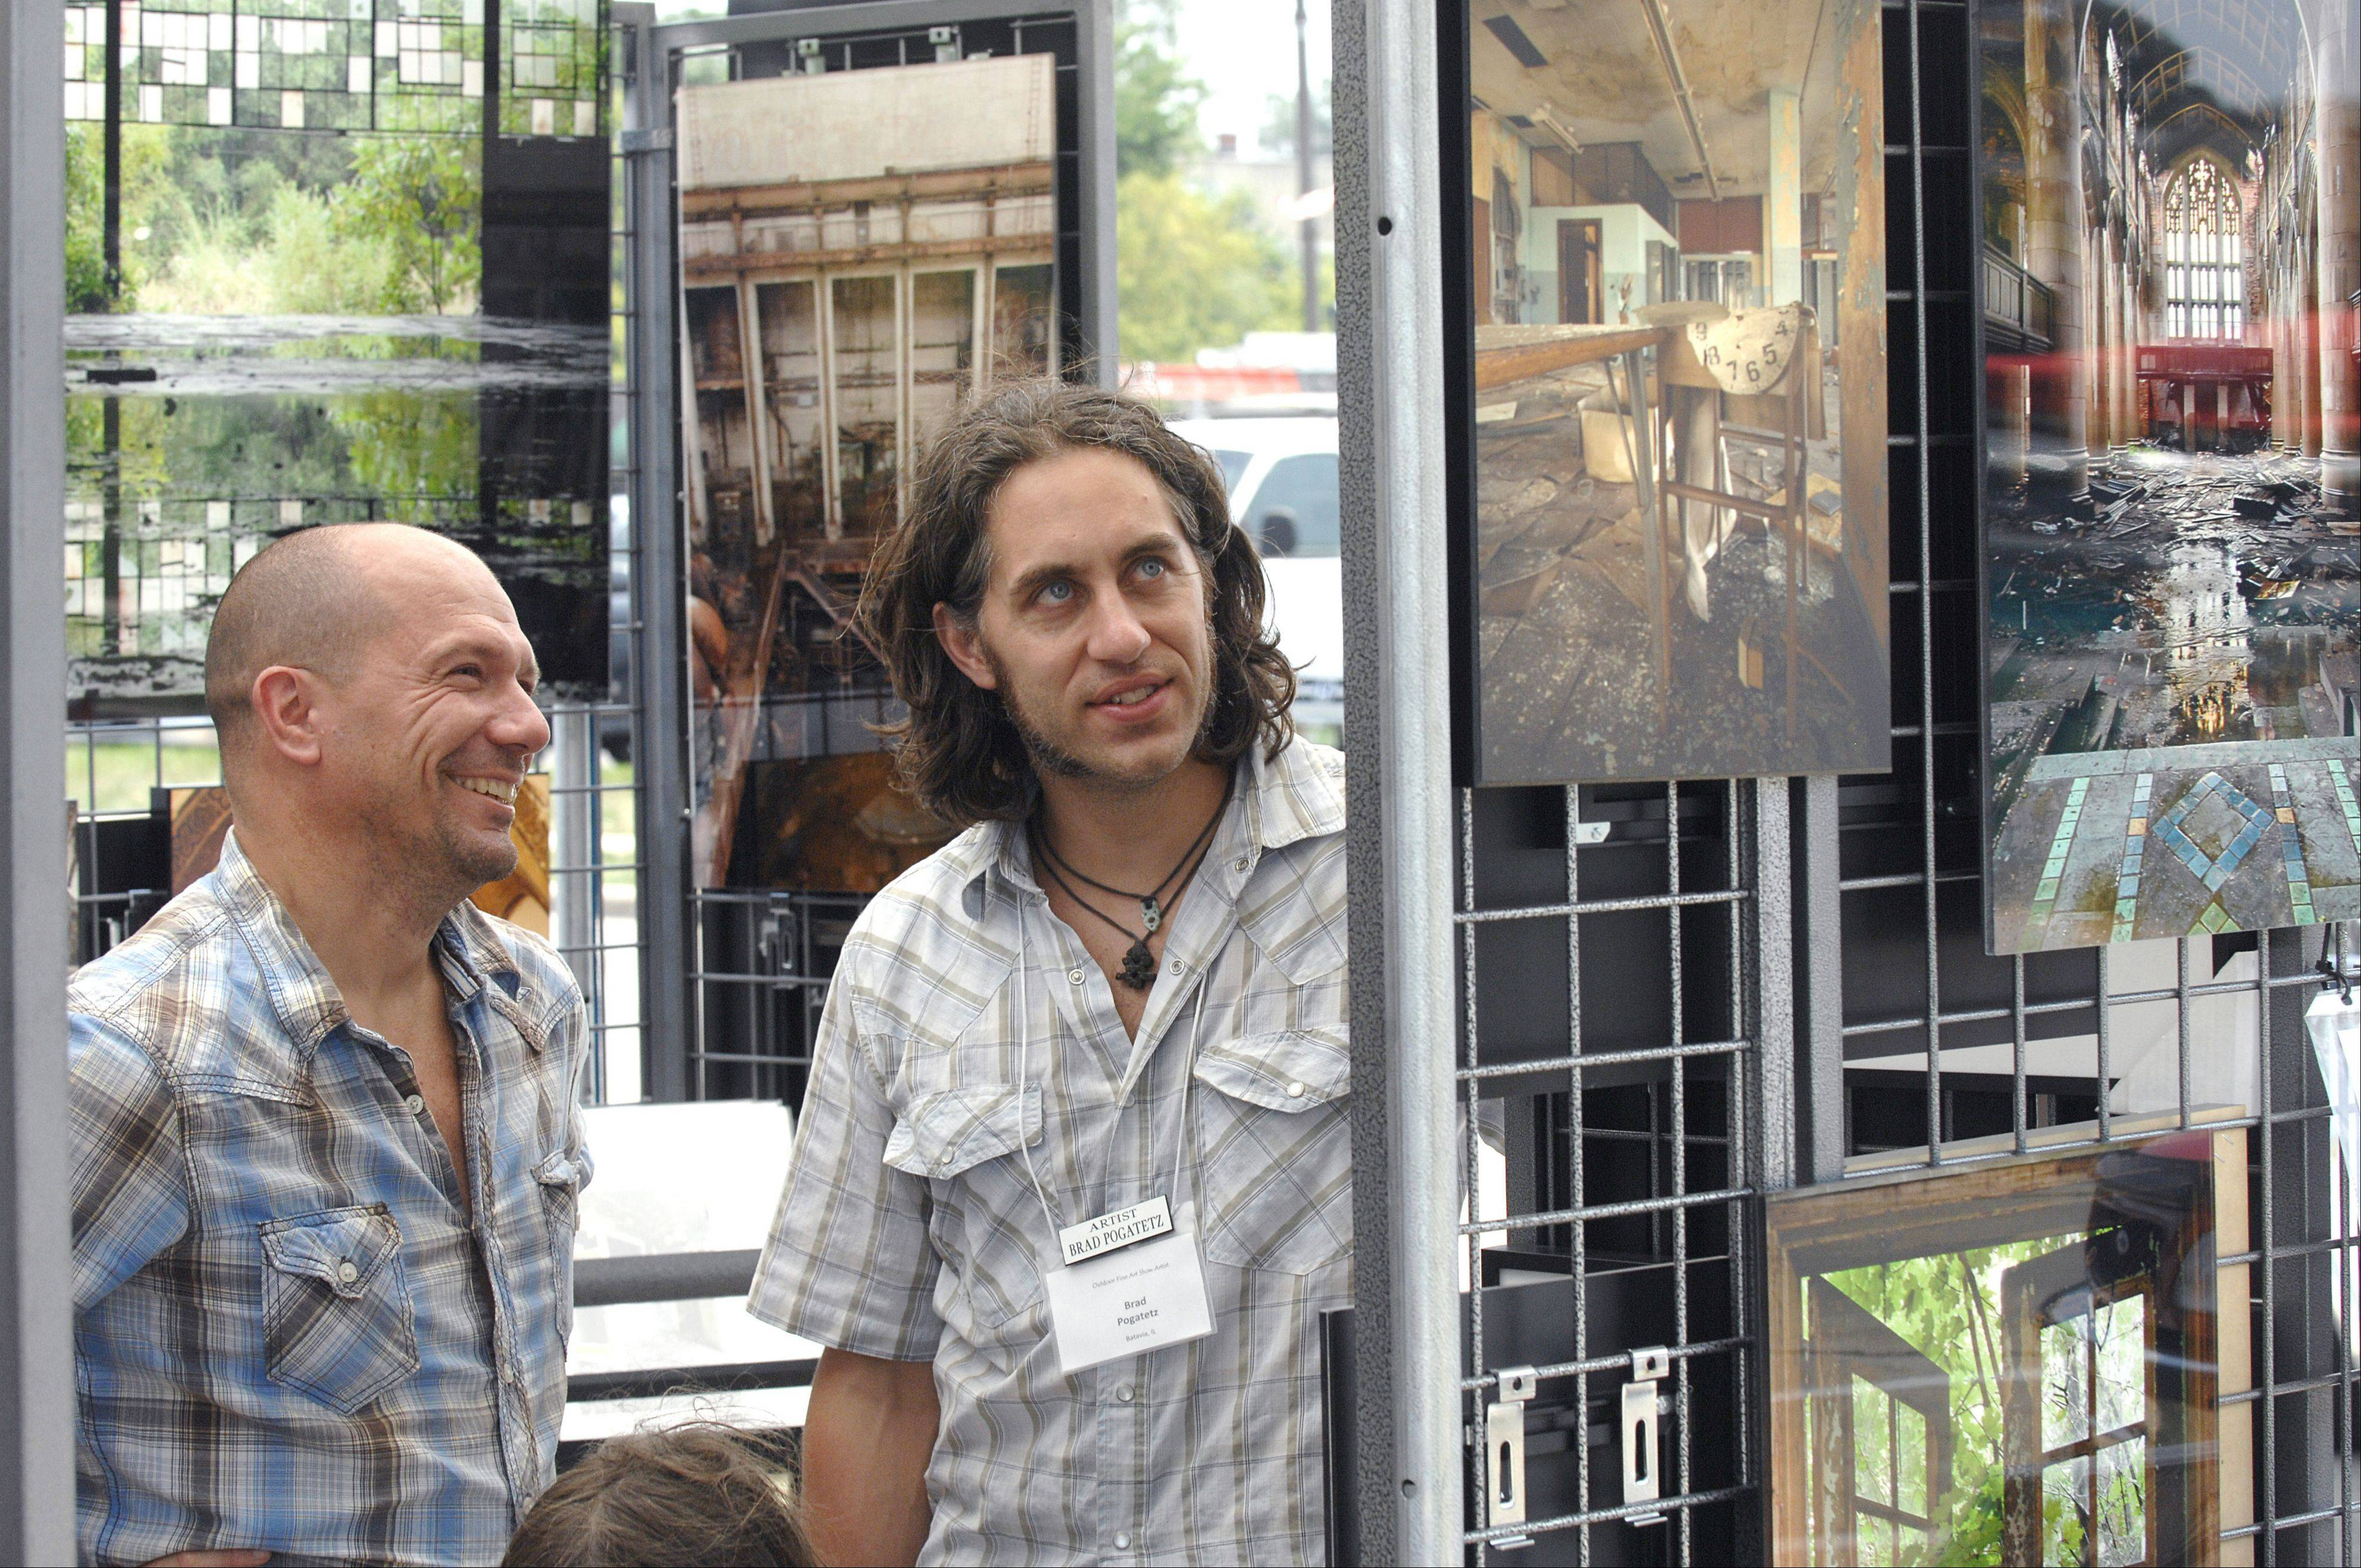 Batavia photographer Brad Pogatetz, right, talks about his work with Jon Schlenker, also of Batavia, at the Art in Your Eye festival along the town's Riverwalk Saturday. This is Pogatetz' second year in the show. His work focuses on abandoned buildings, mainly in the Midwest, and the items left behind in them, with some buildings being reclaimed by nature.